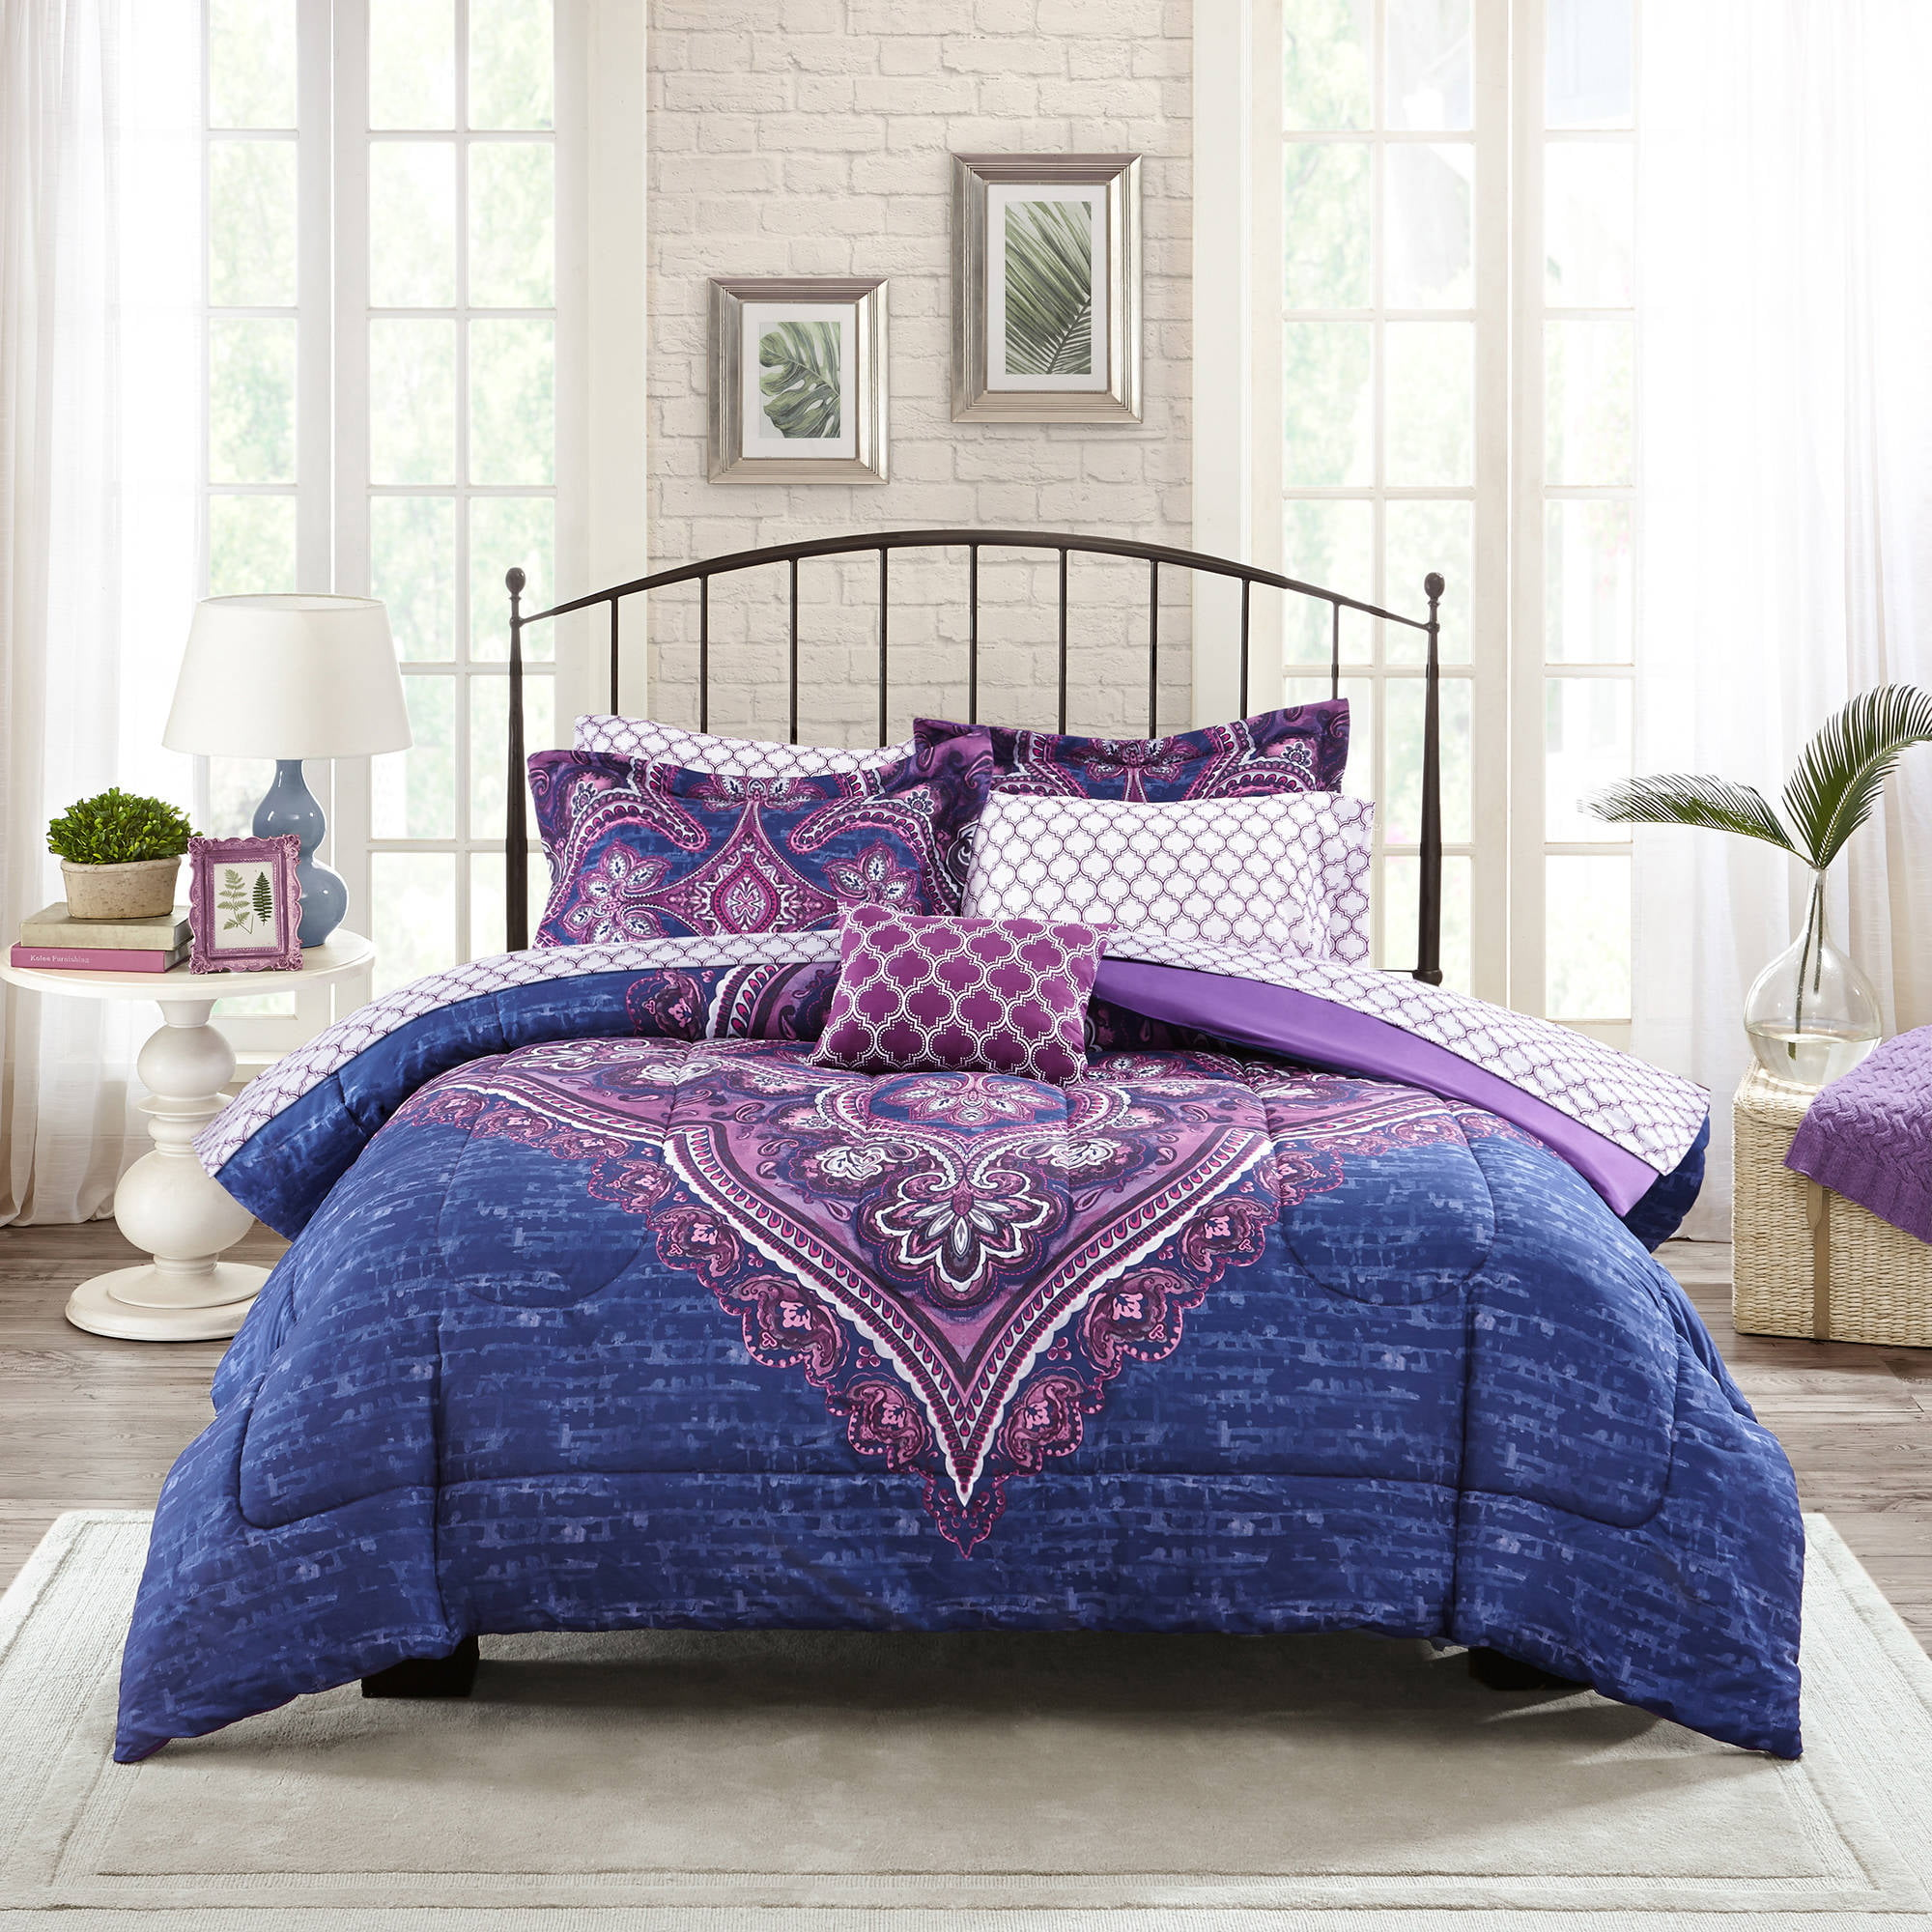 Bedding sets for teenage girls walmart - Bedding Sets For Teenage Girls Walmart 5